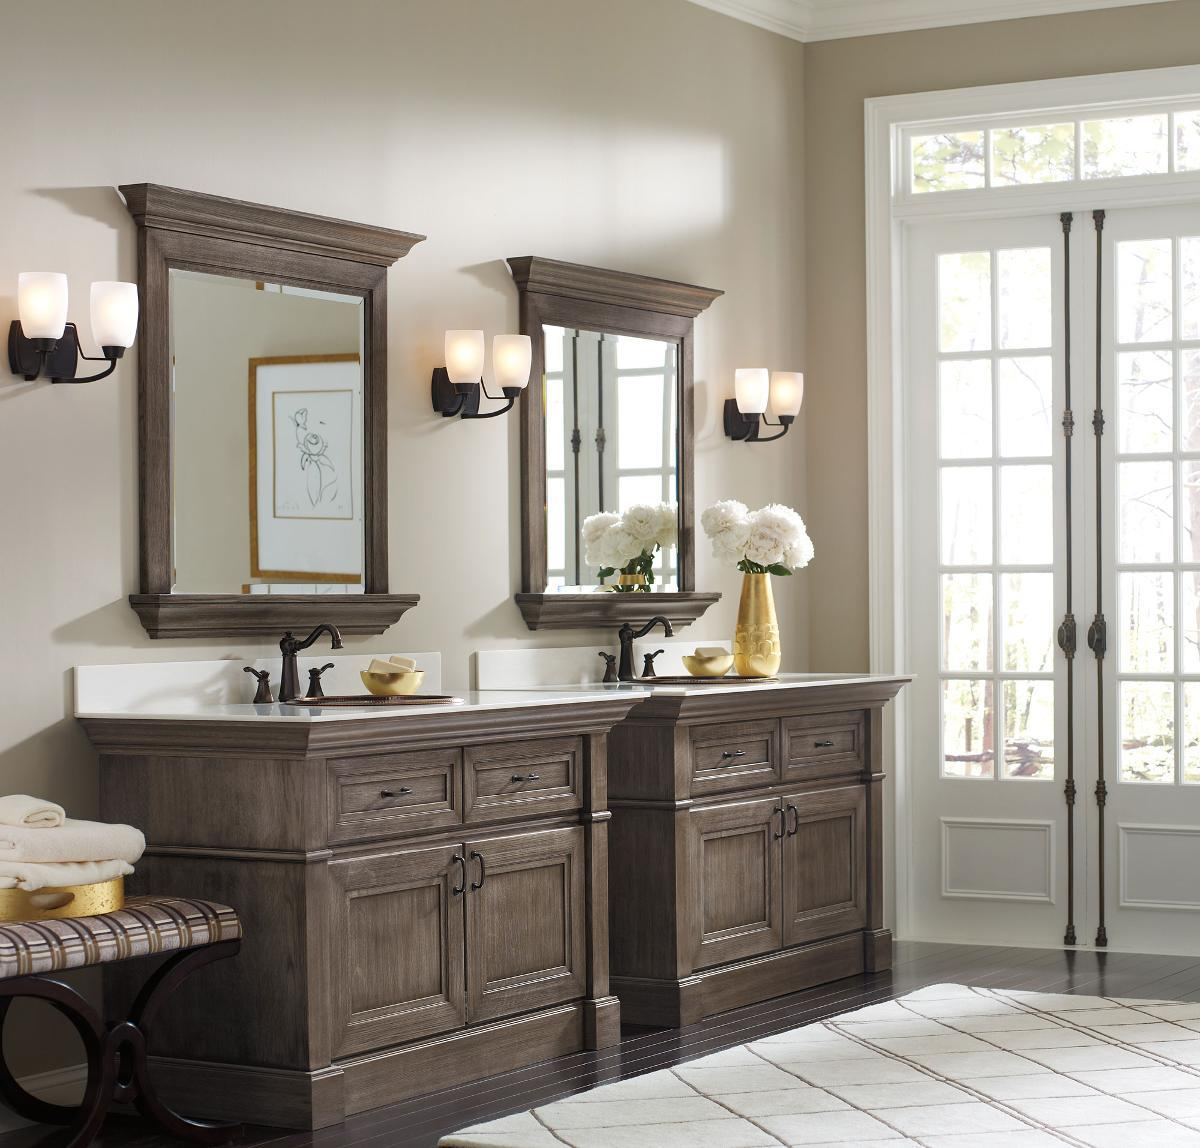 Bathroom Design Buffalo Ny bathroom remodel buffalo, ny | kitchen advantage